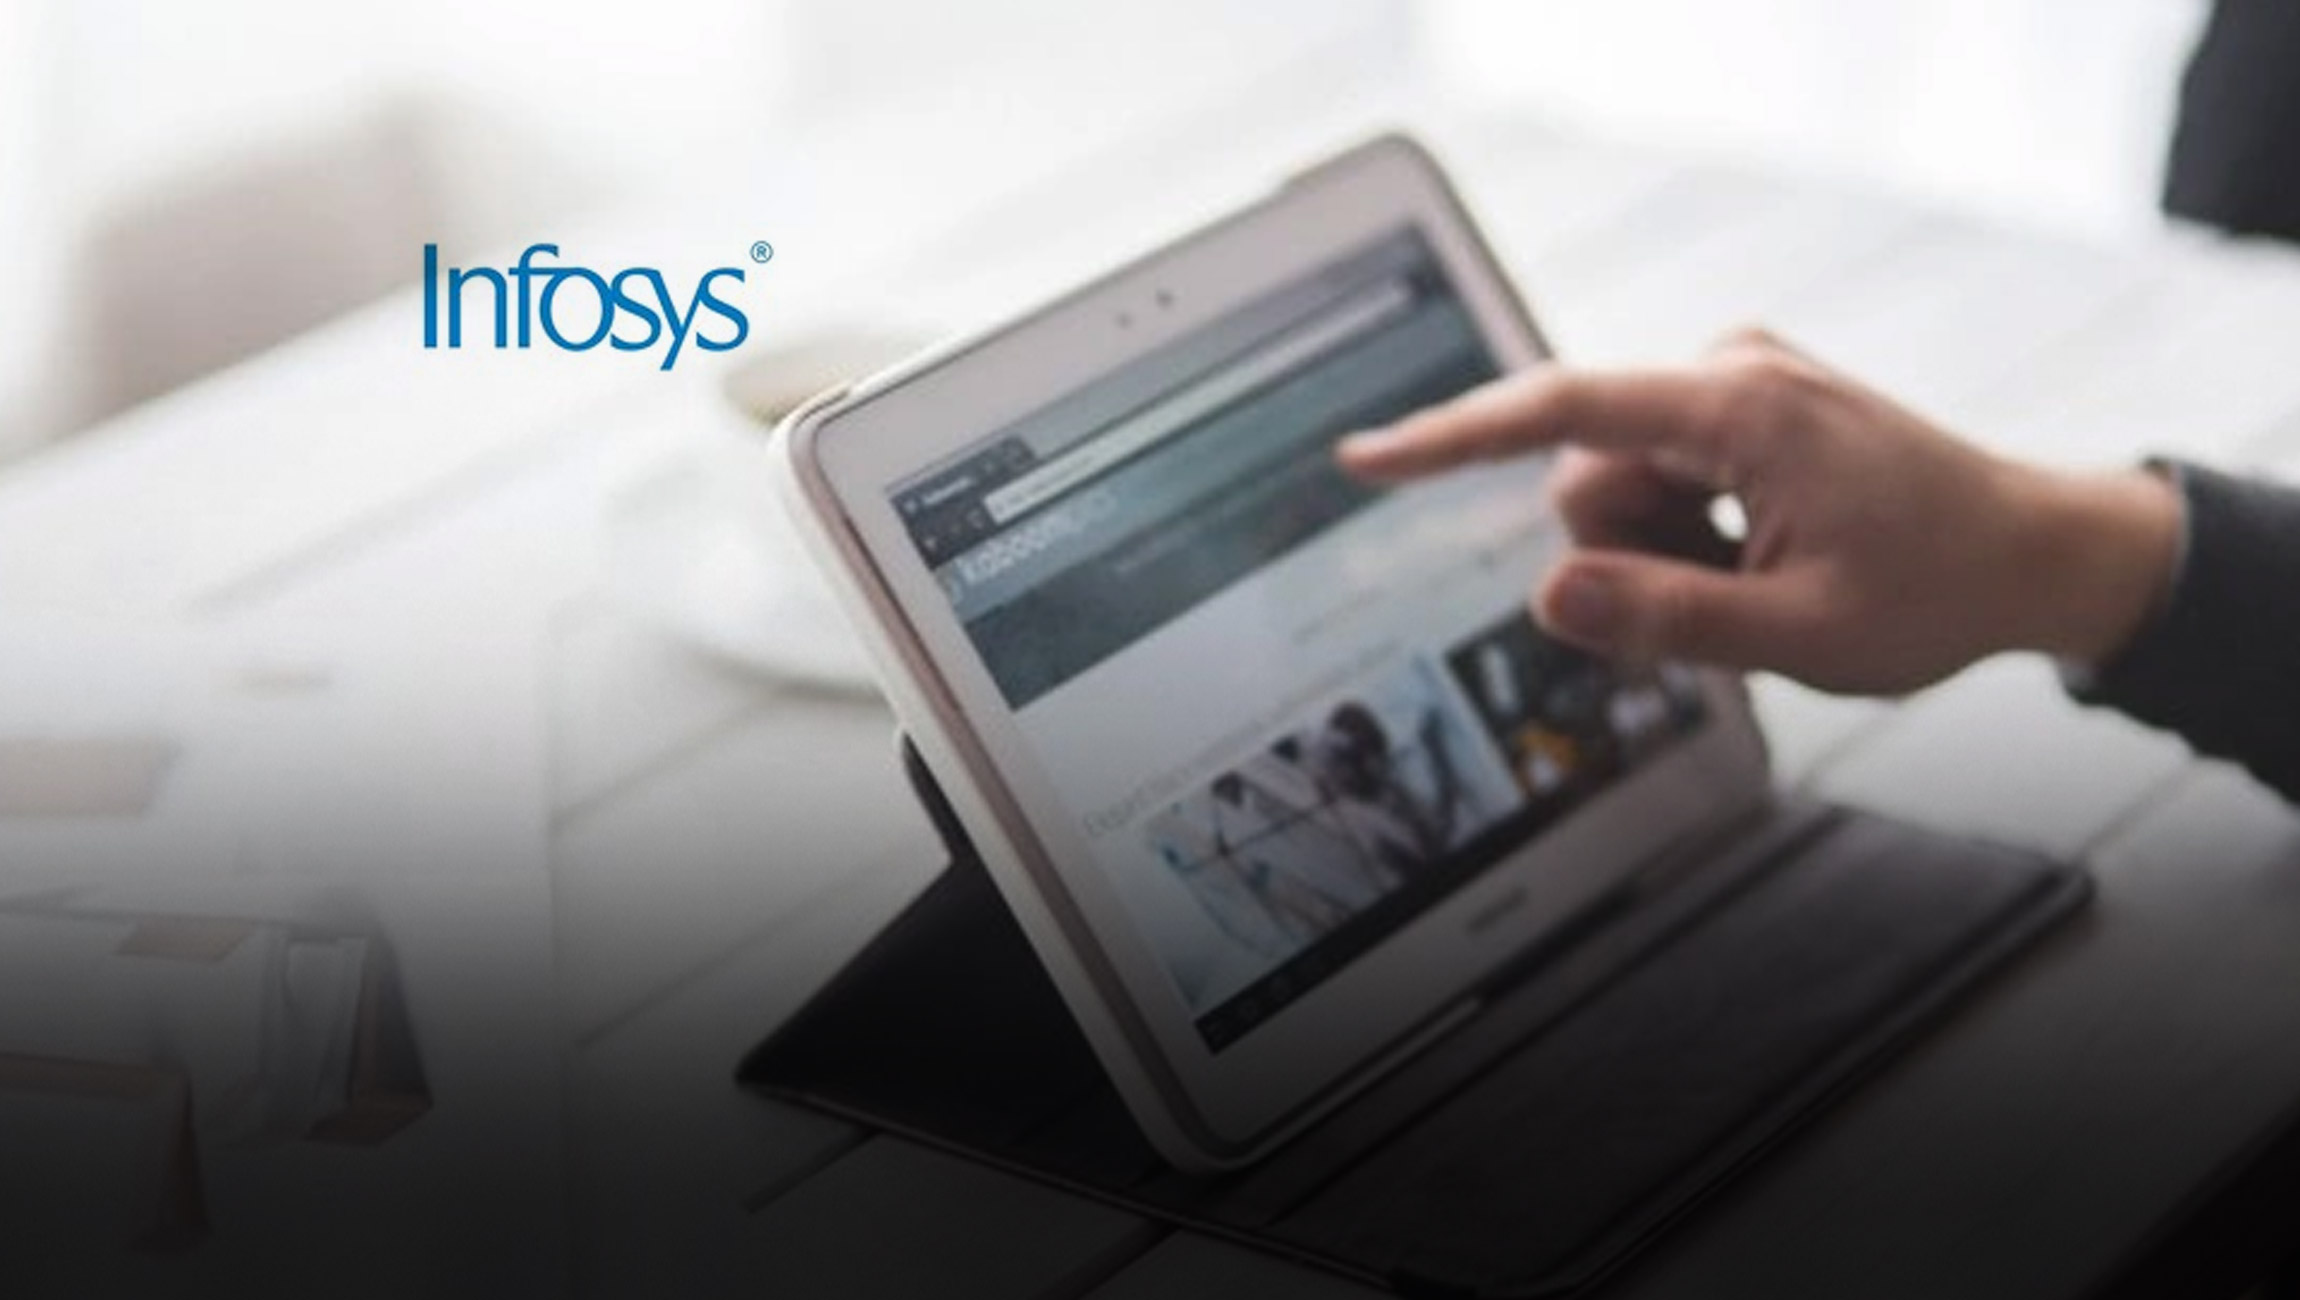 Infosys-Recognized-as-the-Fastest-Growing-Top-10-IT-Services-Brand-of-2020